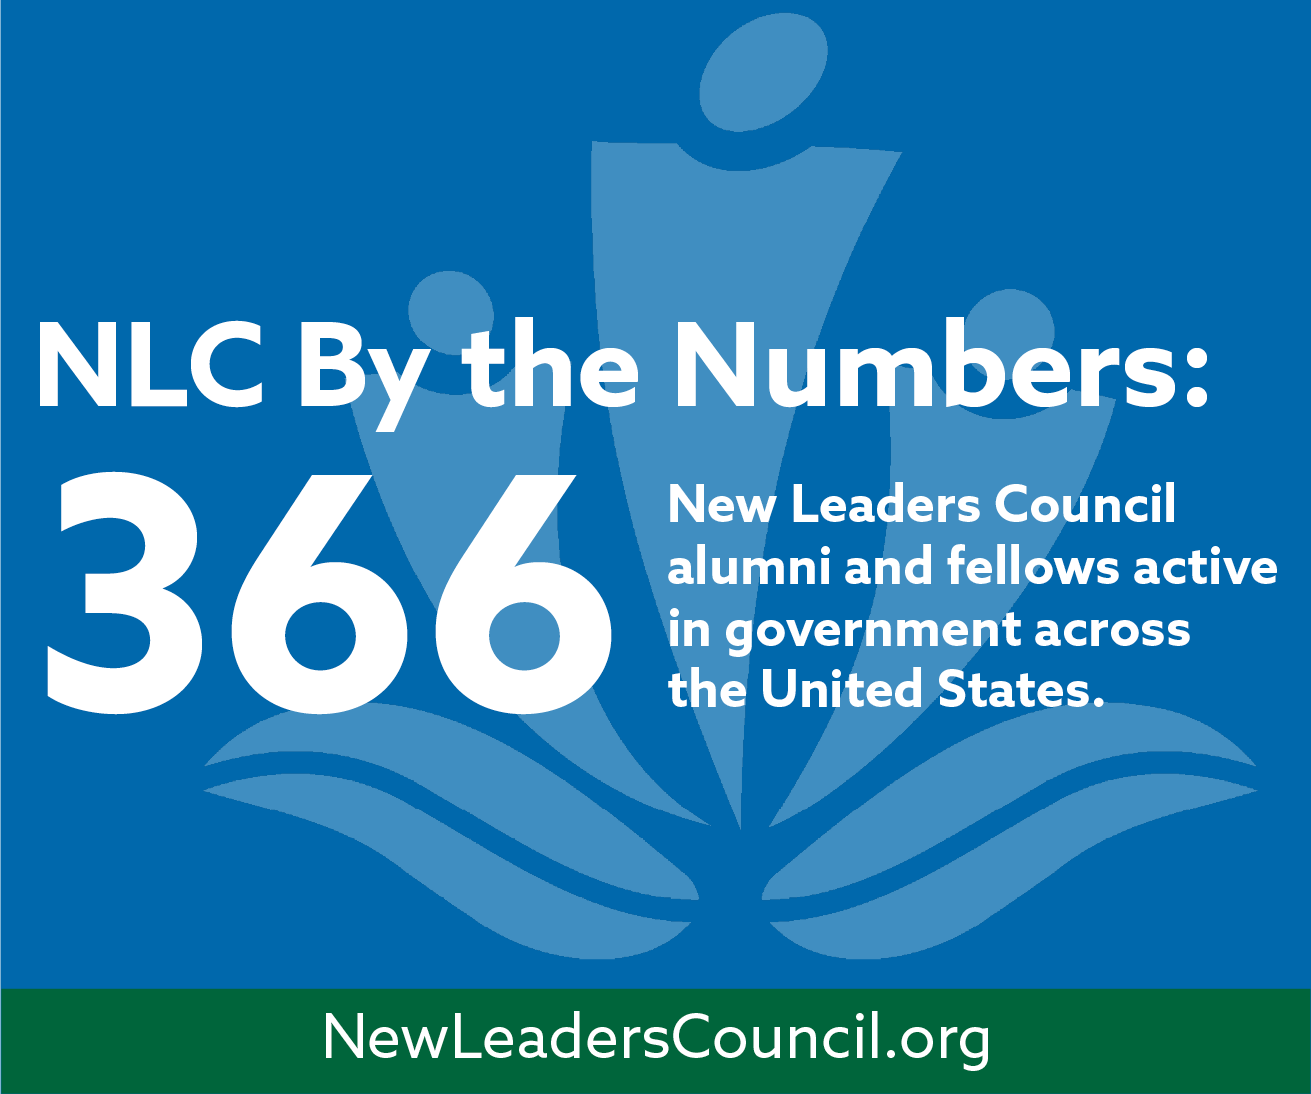 Learn more about NLC's impact across the nation